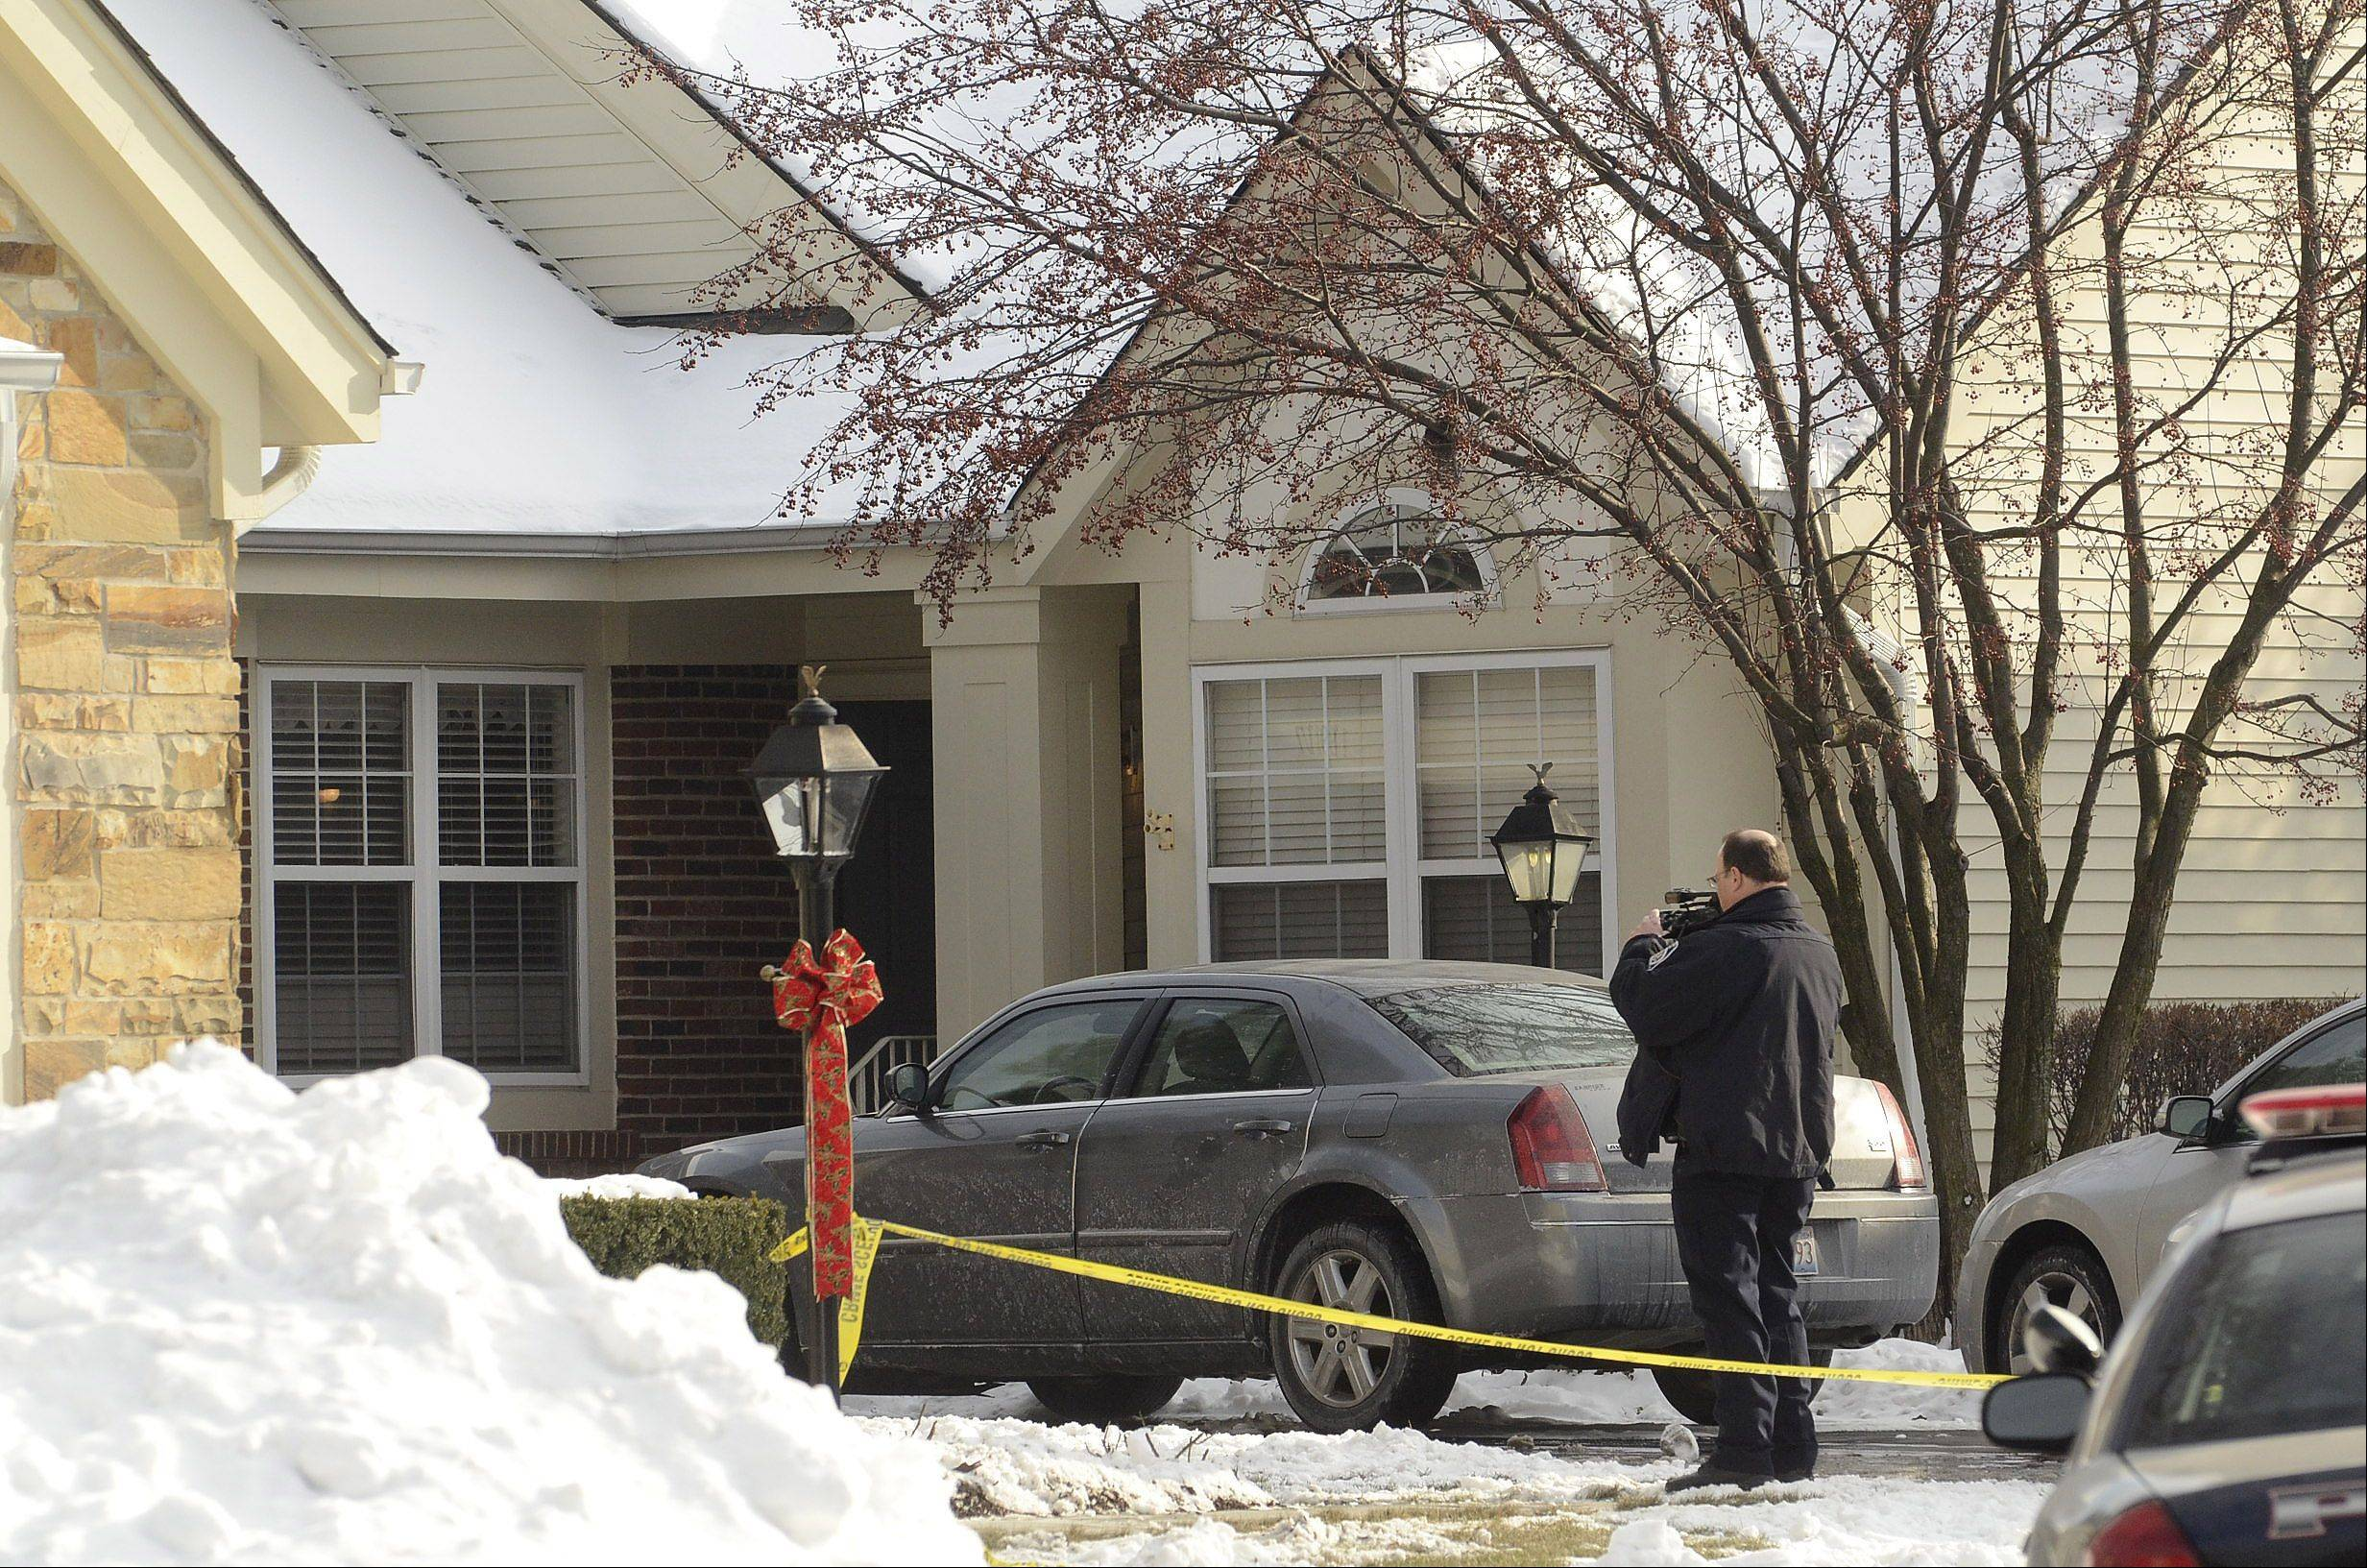 Police on Thursday investigated the shooting scene at 1917 Windham Court in Arlington Heights.